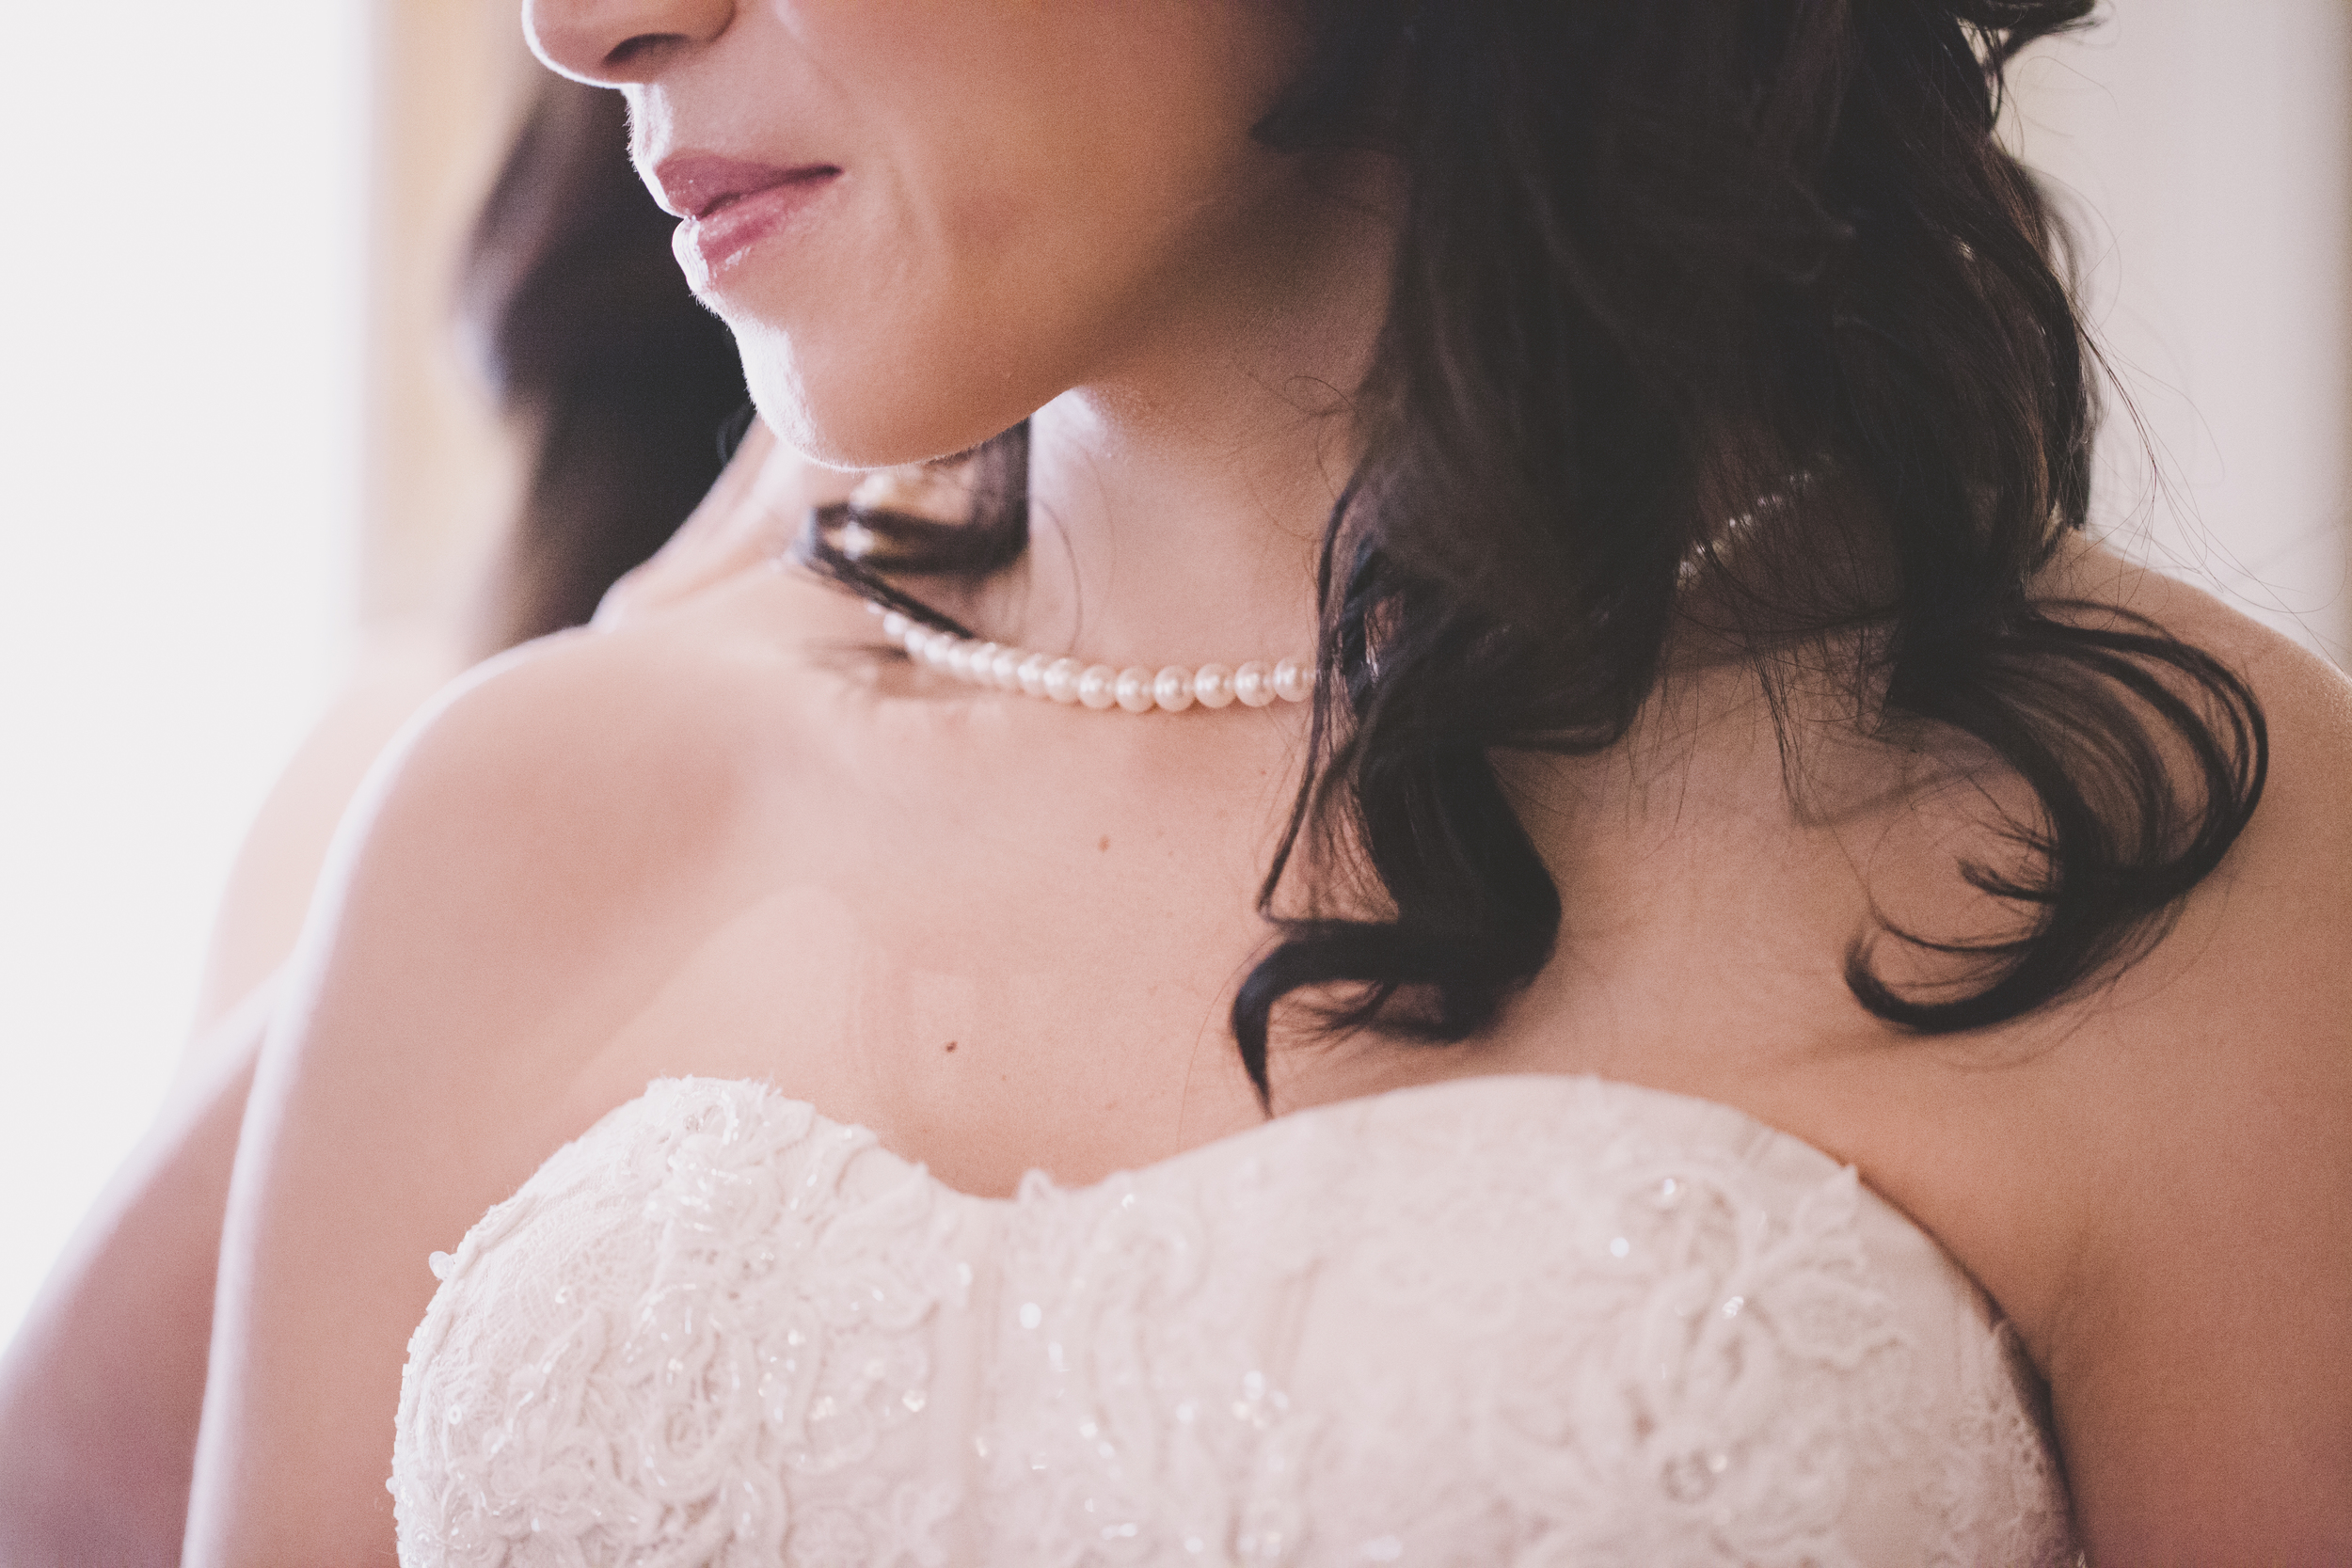 close up pearl necklace in wedding dress bride